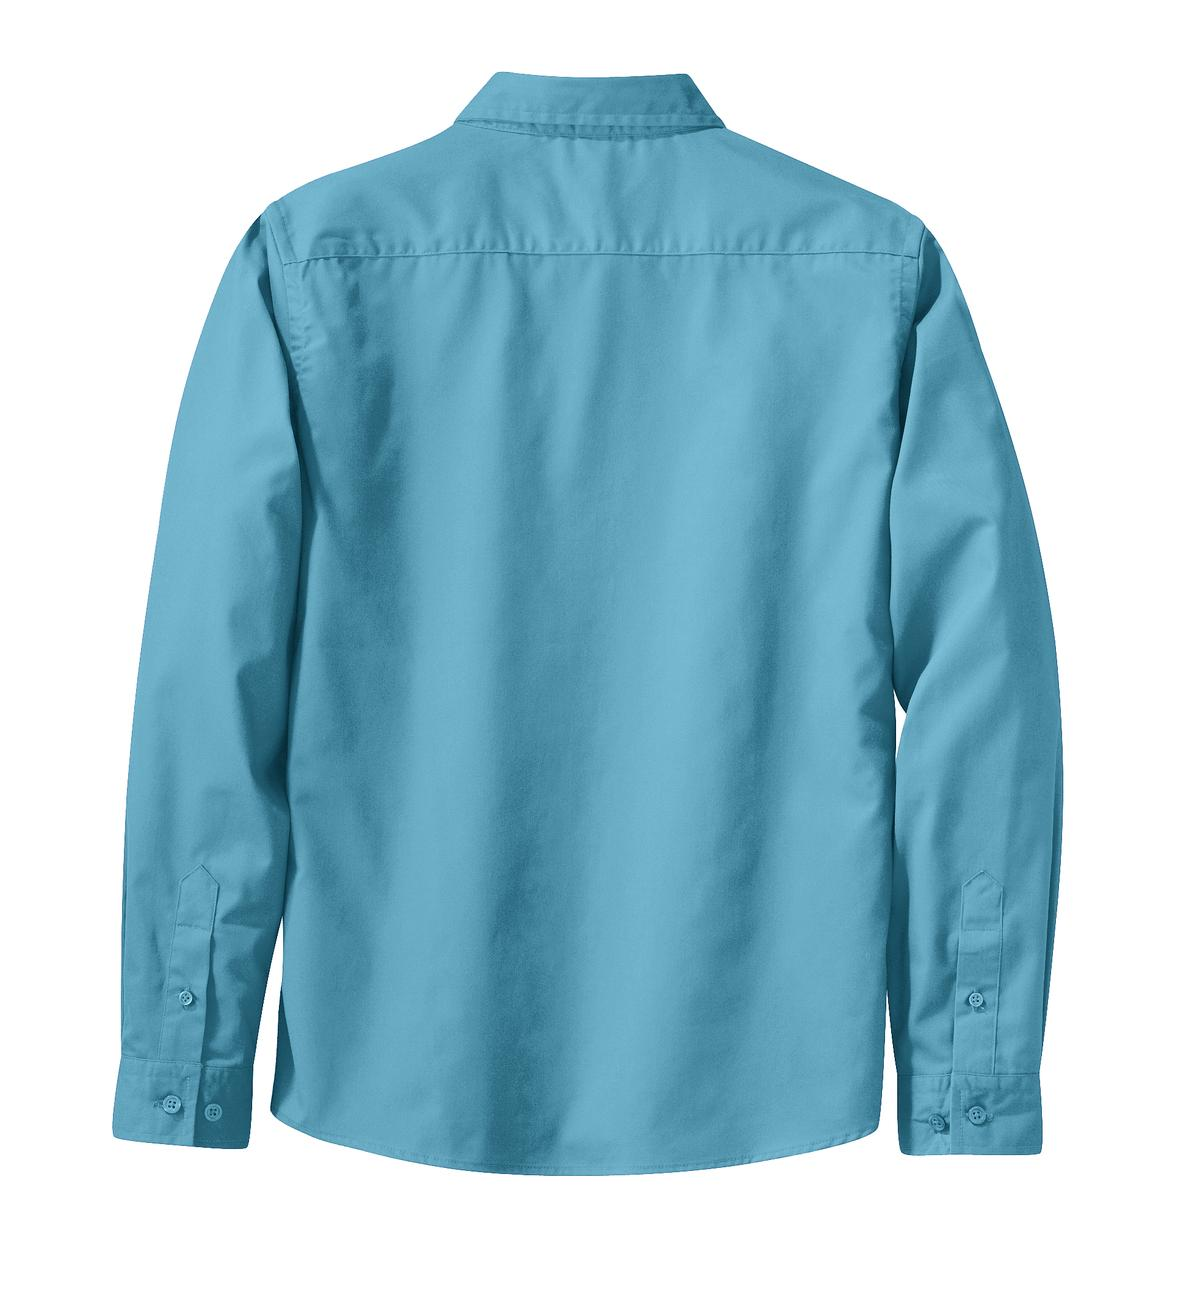 Mafoose Women's Long Sleeve Easy Care Shirt Maui Blue-Back